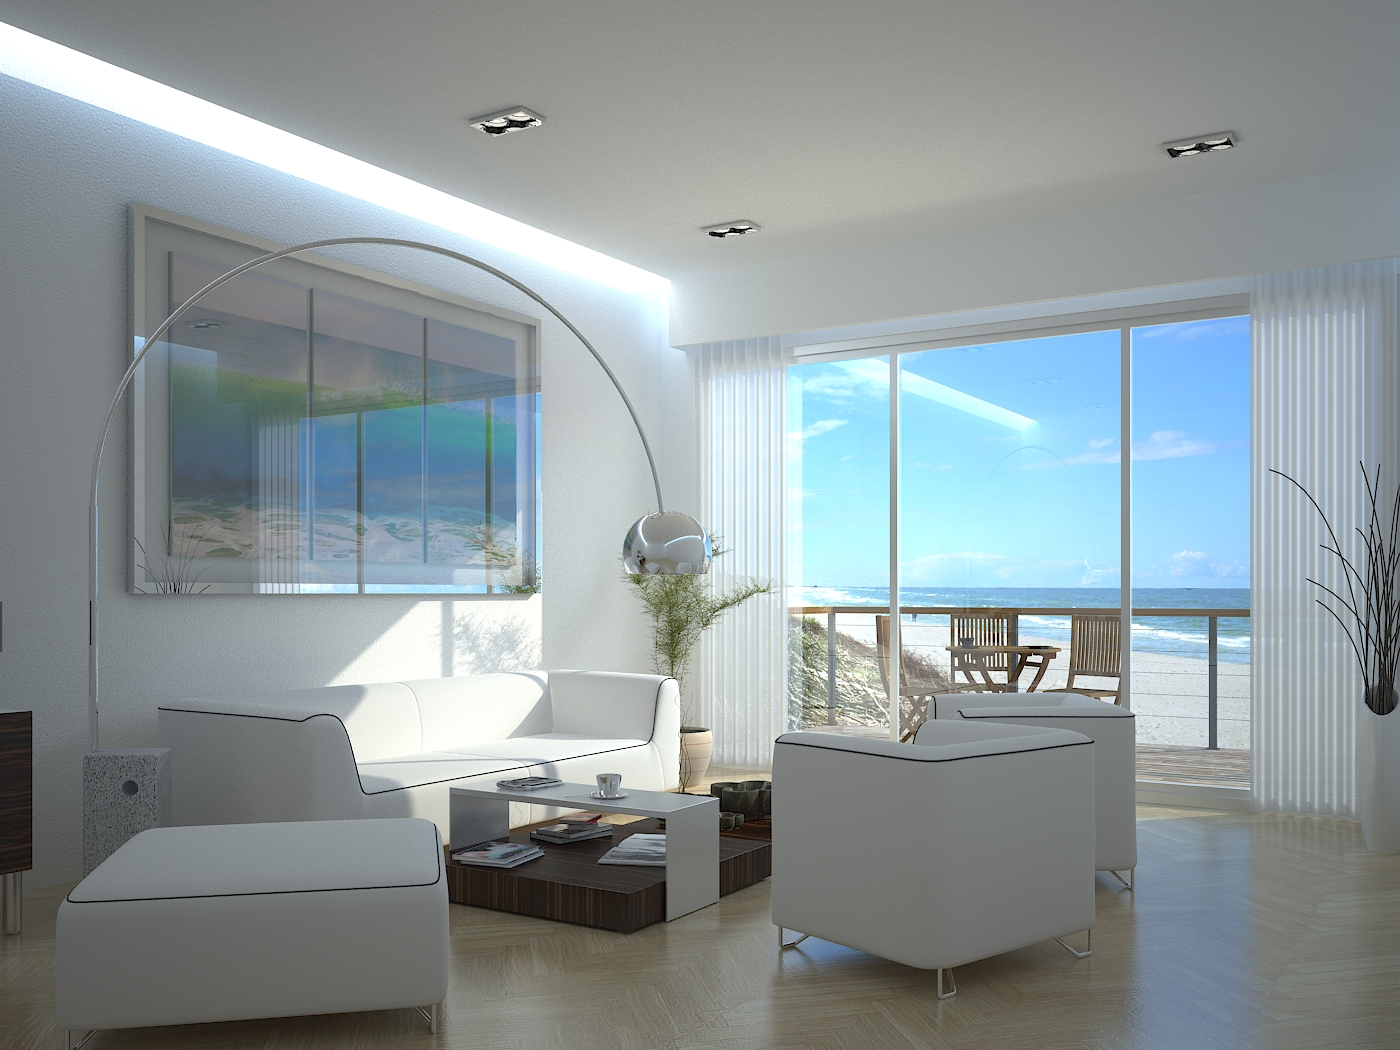 Beach House Interior Design Photos: New Beach House Interior By Outboxdesign On DeviantArt